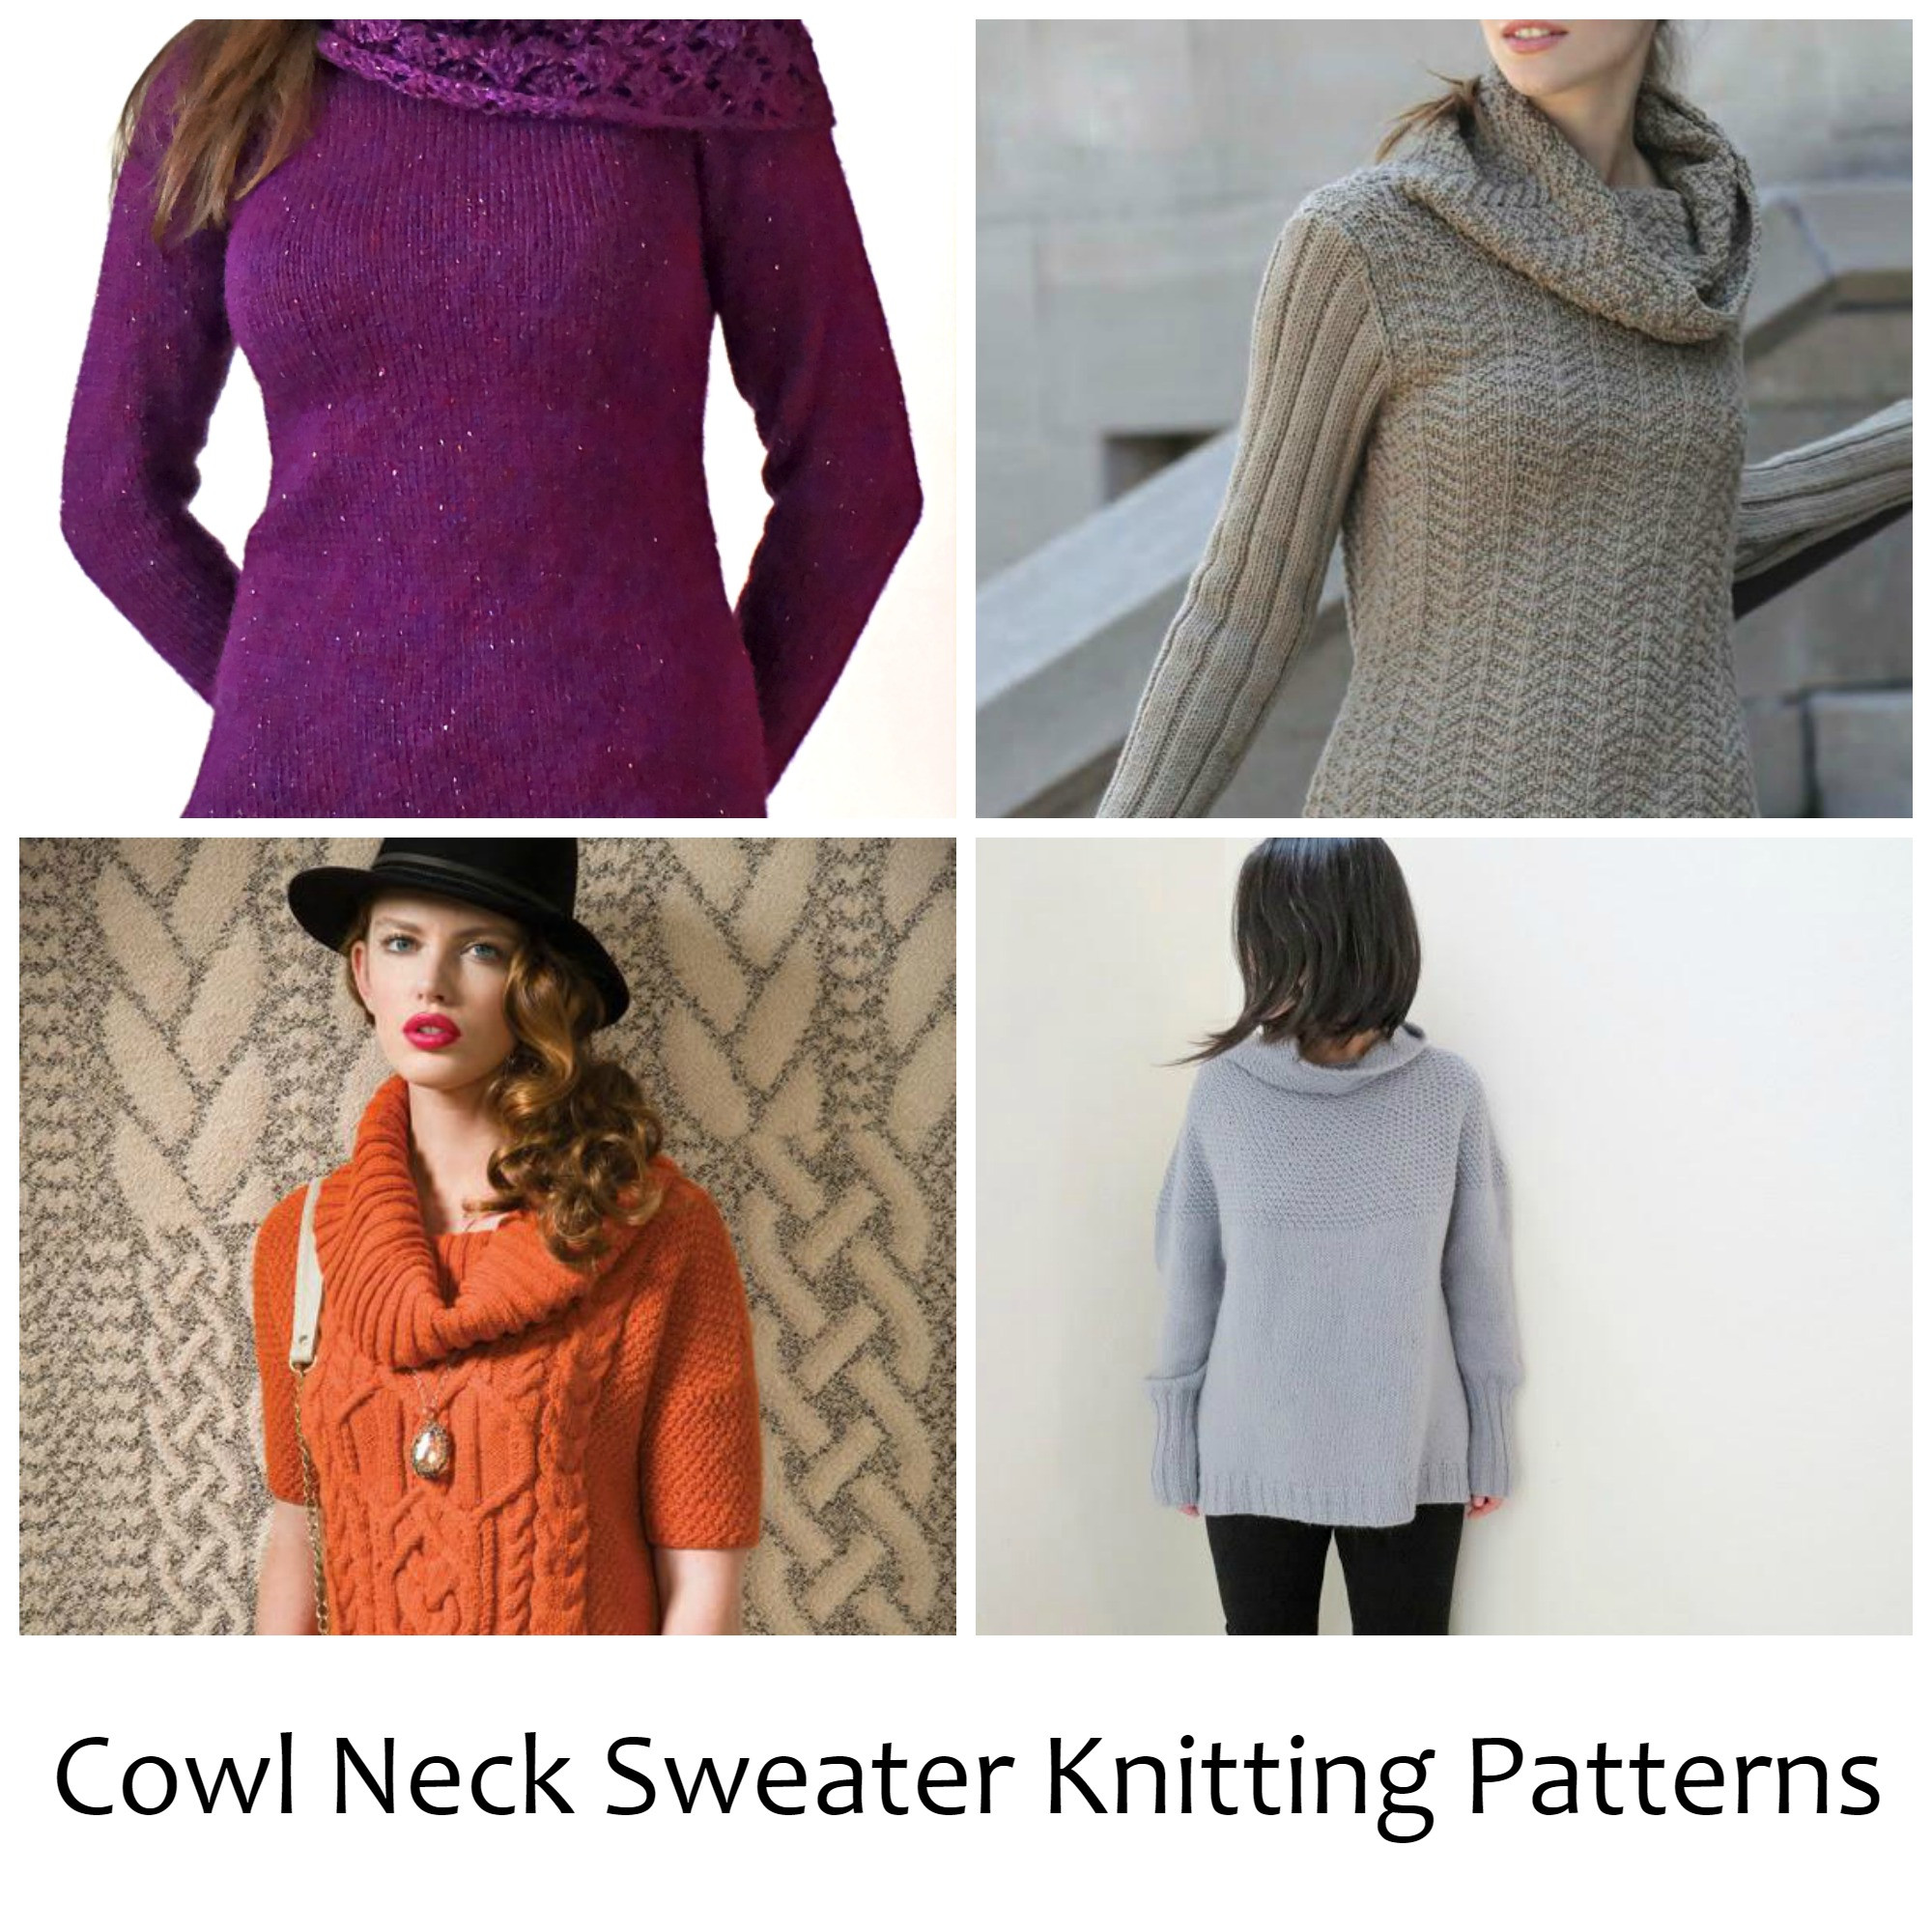 New 10 Cozy Cowl Neck Sweater Knitting Patterns Cowl Neck Knit Sweater Of Top 42 Pictures Cowl Neck Knit Sweater